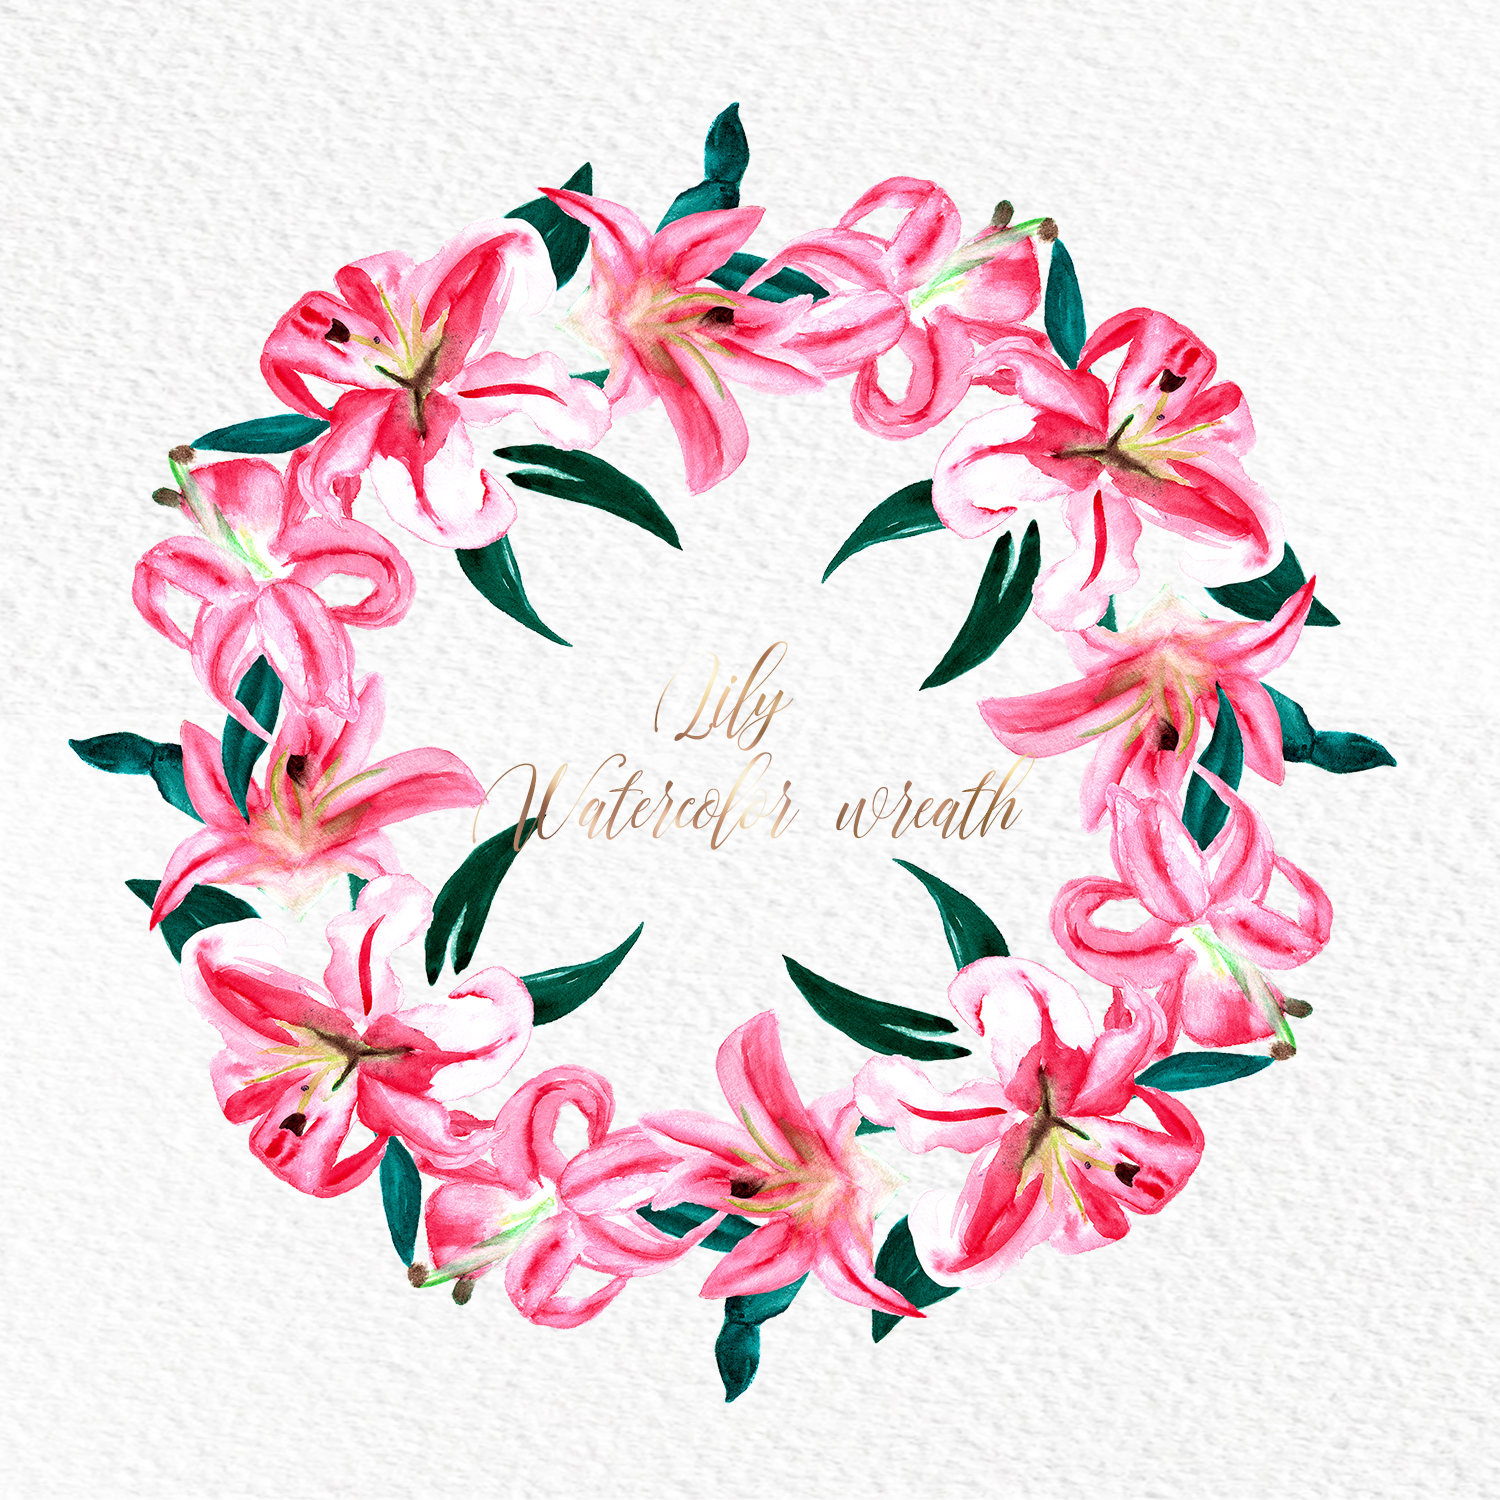 Watercolor Floral Clipart Free Download Best Watercolor Floral